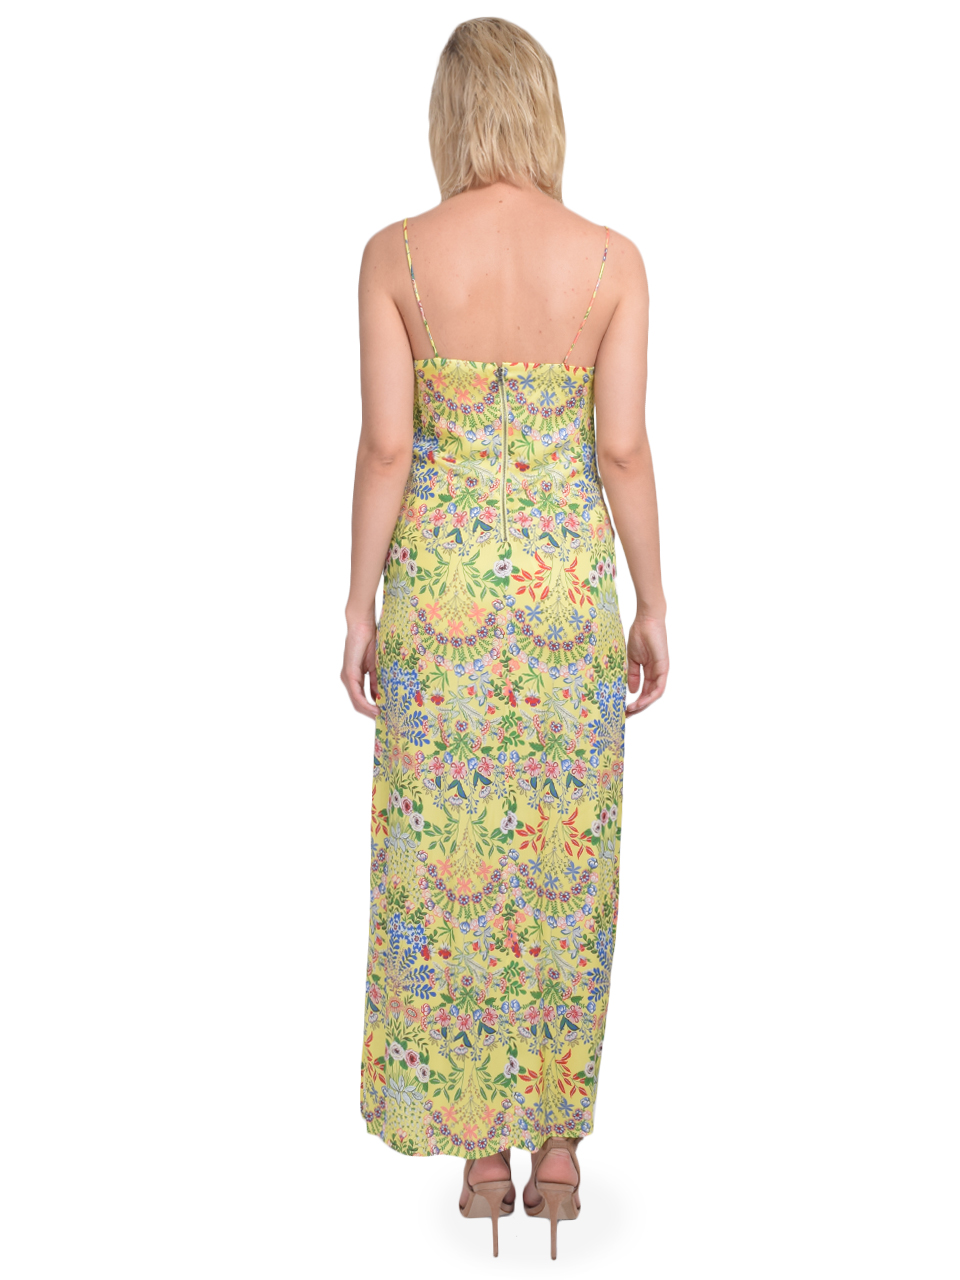 ALICE + OLIVIA Harmony Slip Dress with Slit in Wildflower Daffodil Back View